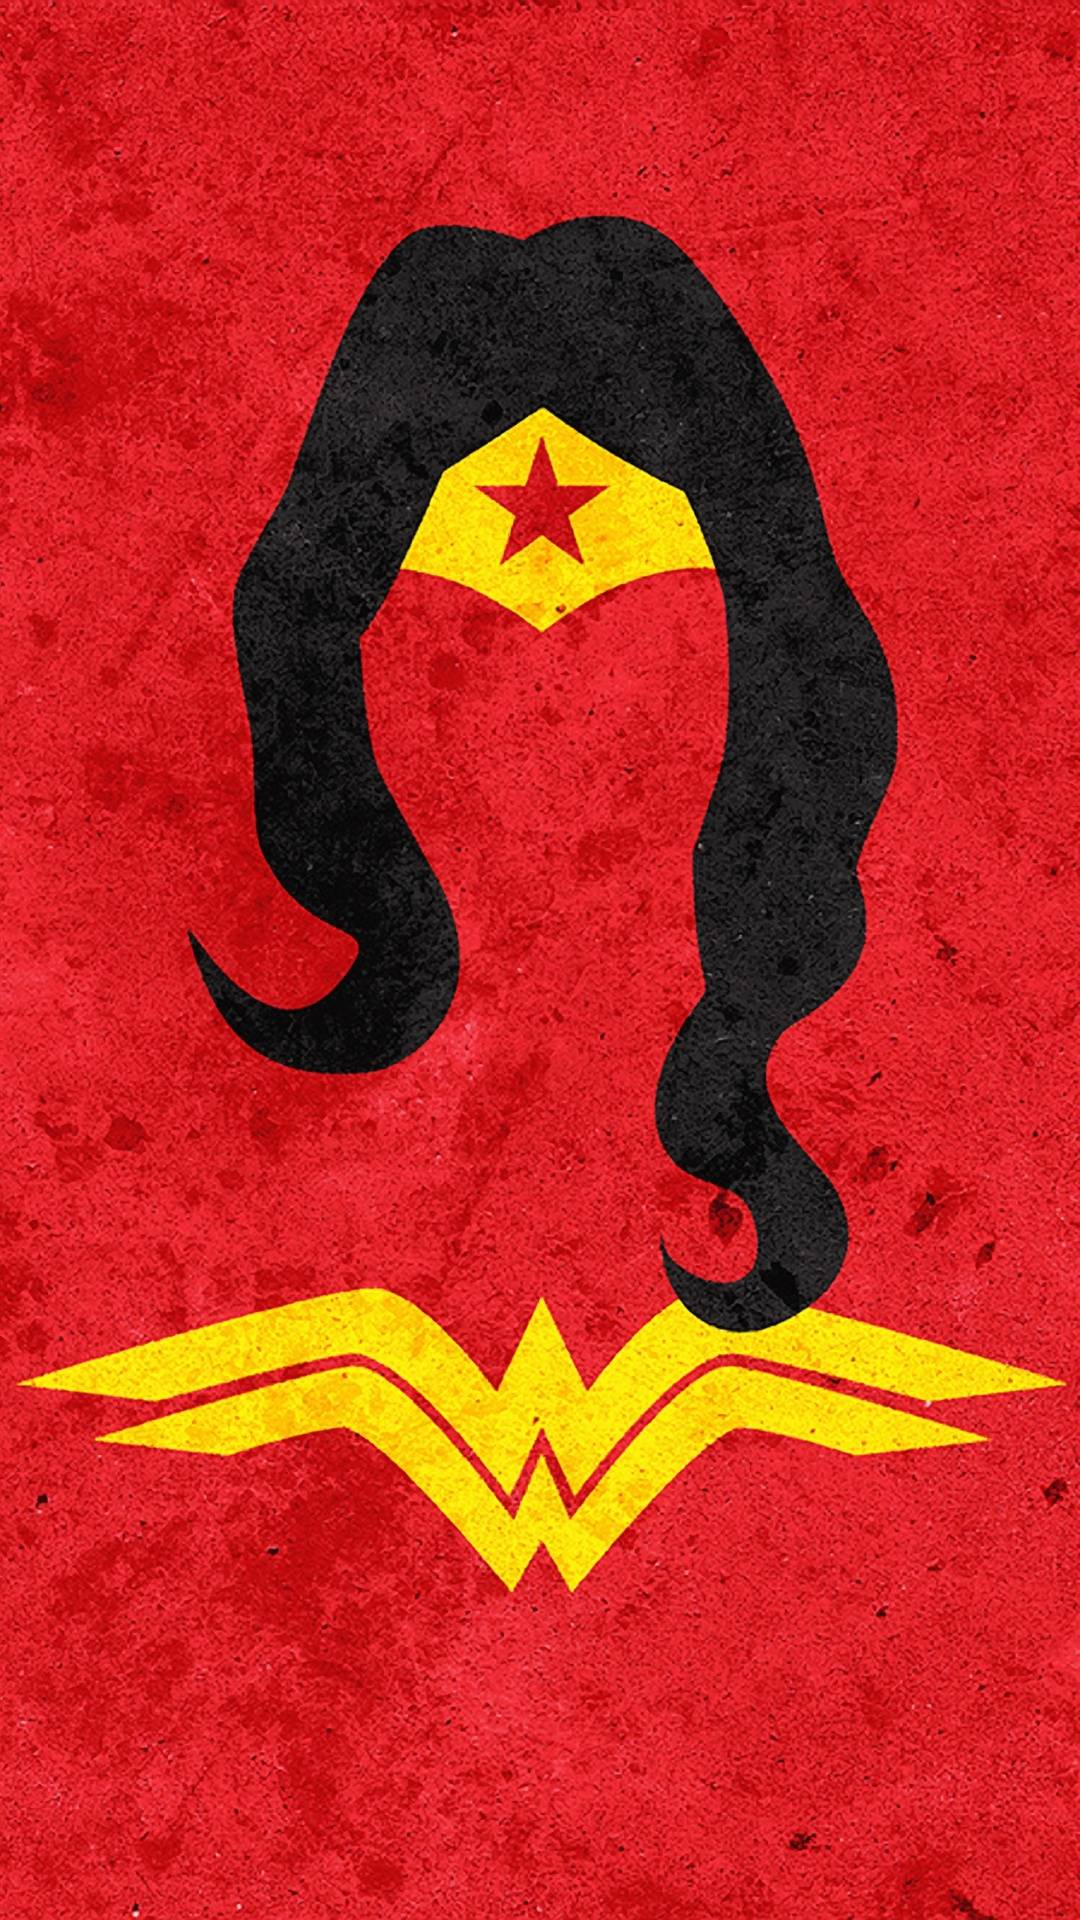 central wallpaper wonder woman - photo #34